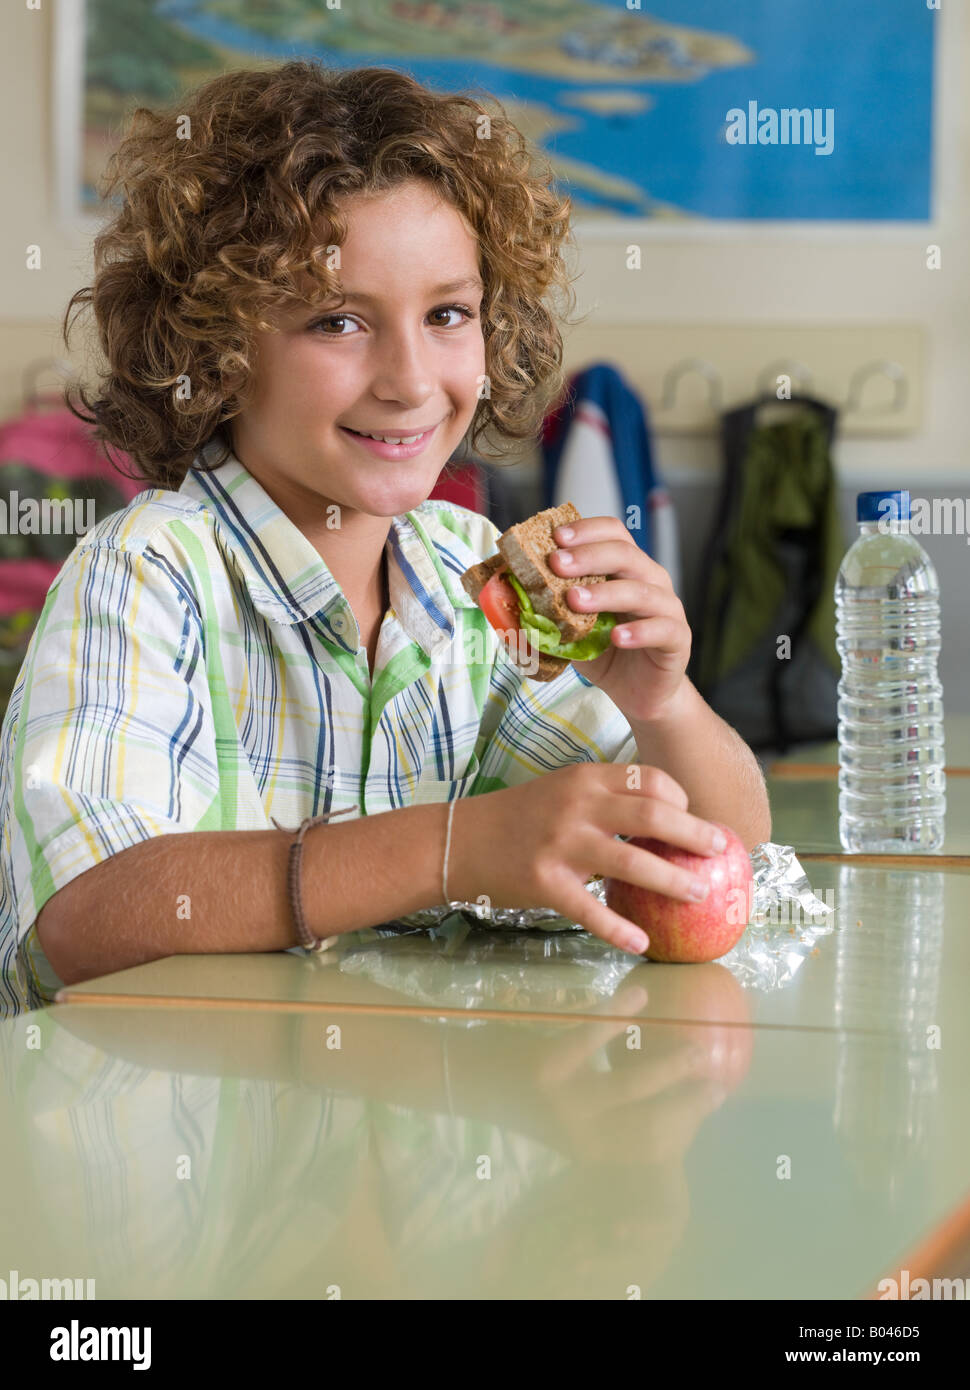 Boy with packed lunch - Stock Image